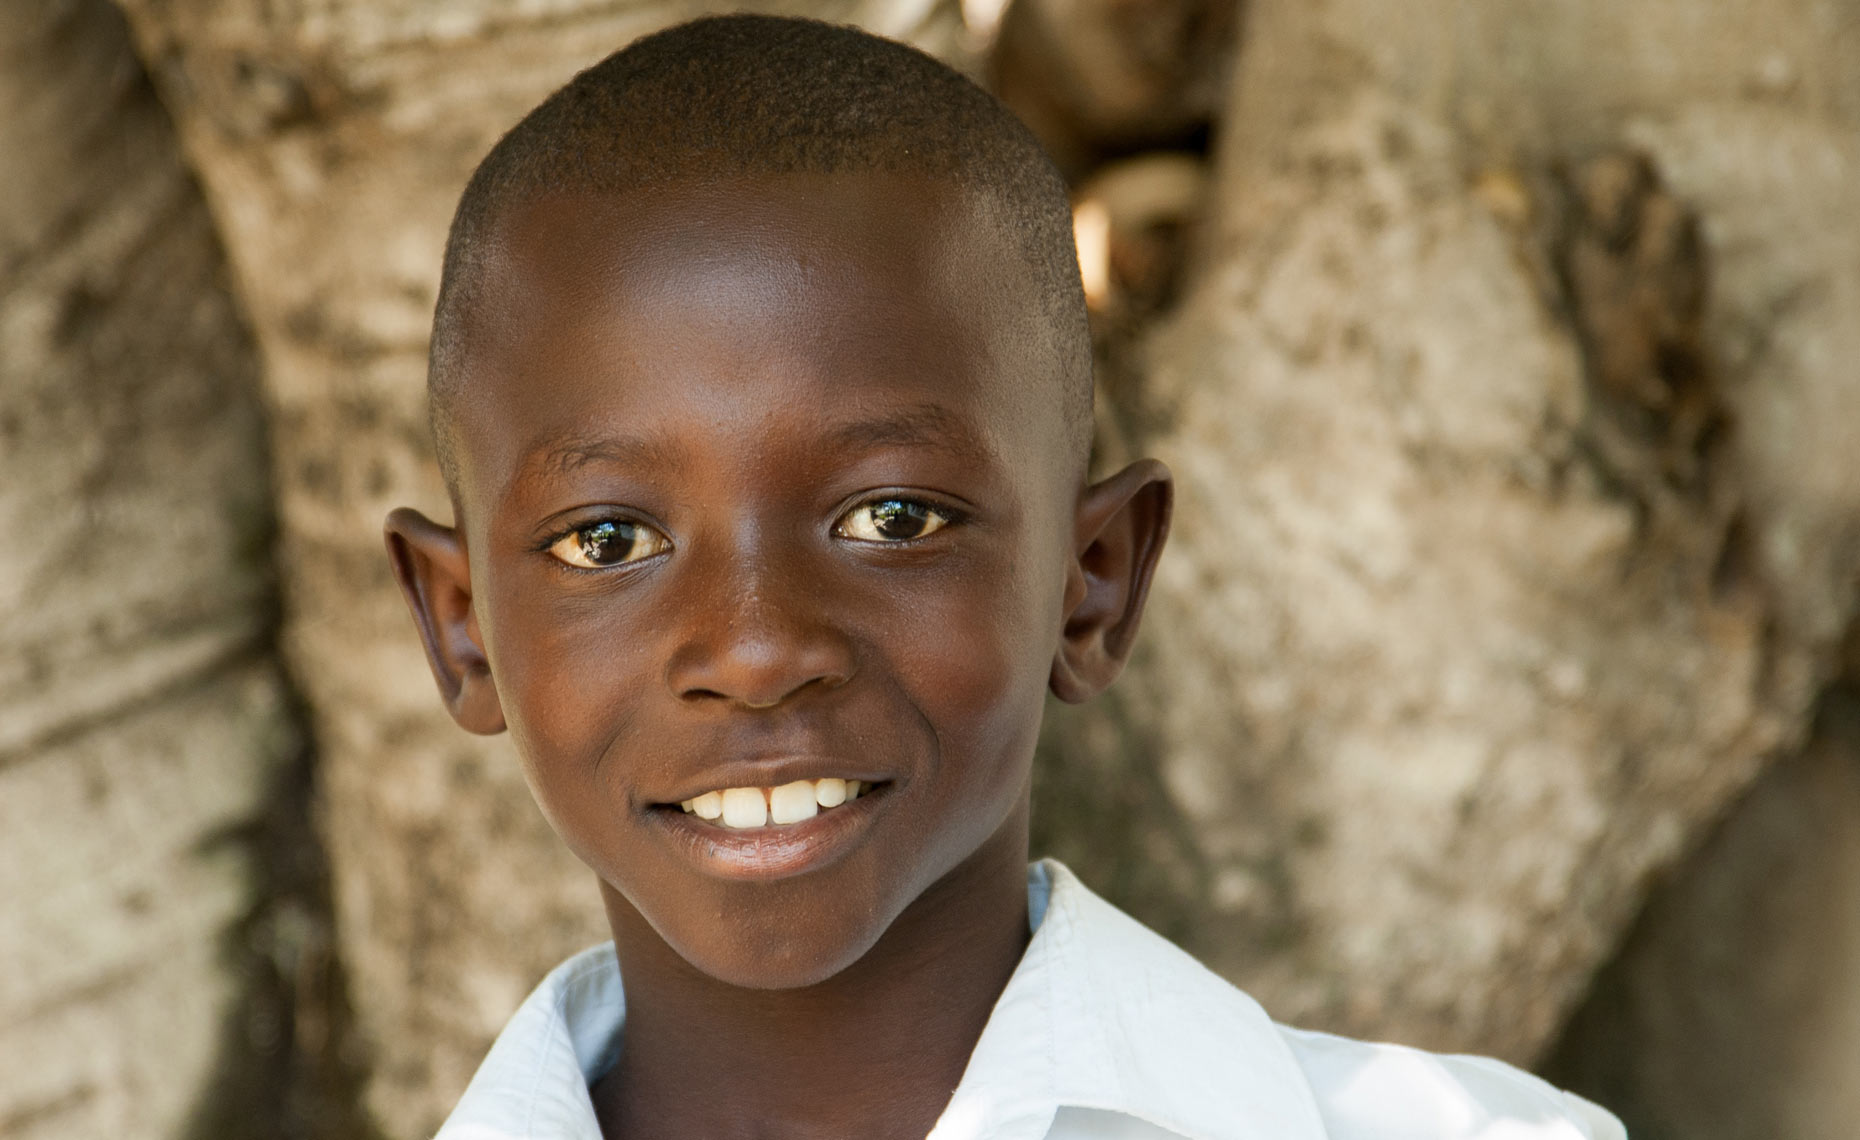 Colton-portrait-of-Haiti-119